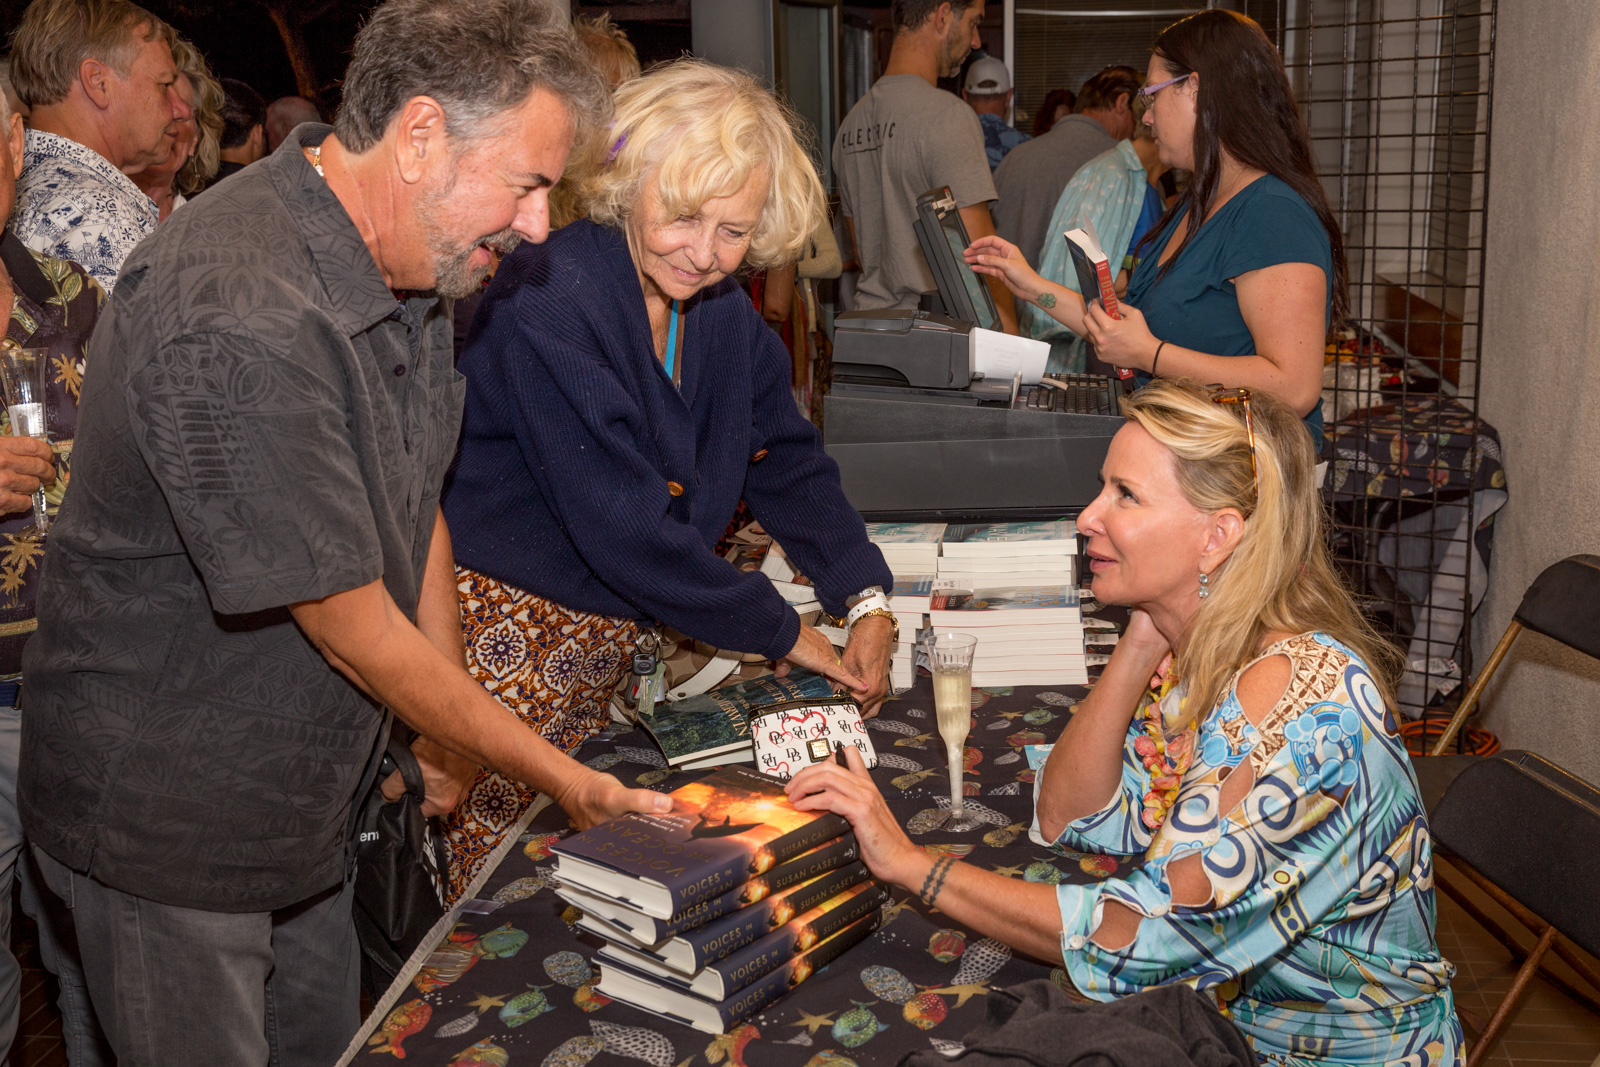 Susan Casey Book Signing at The Green Room